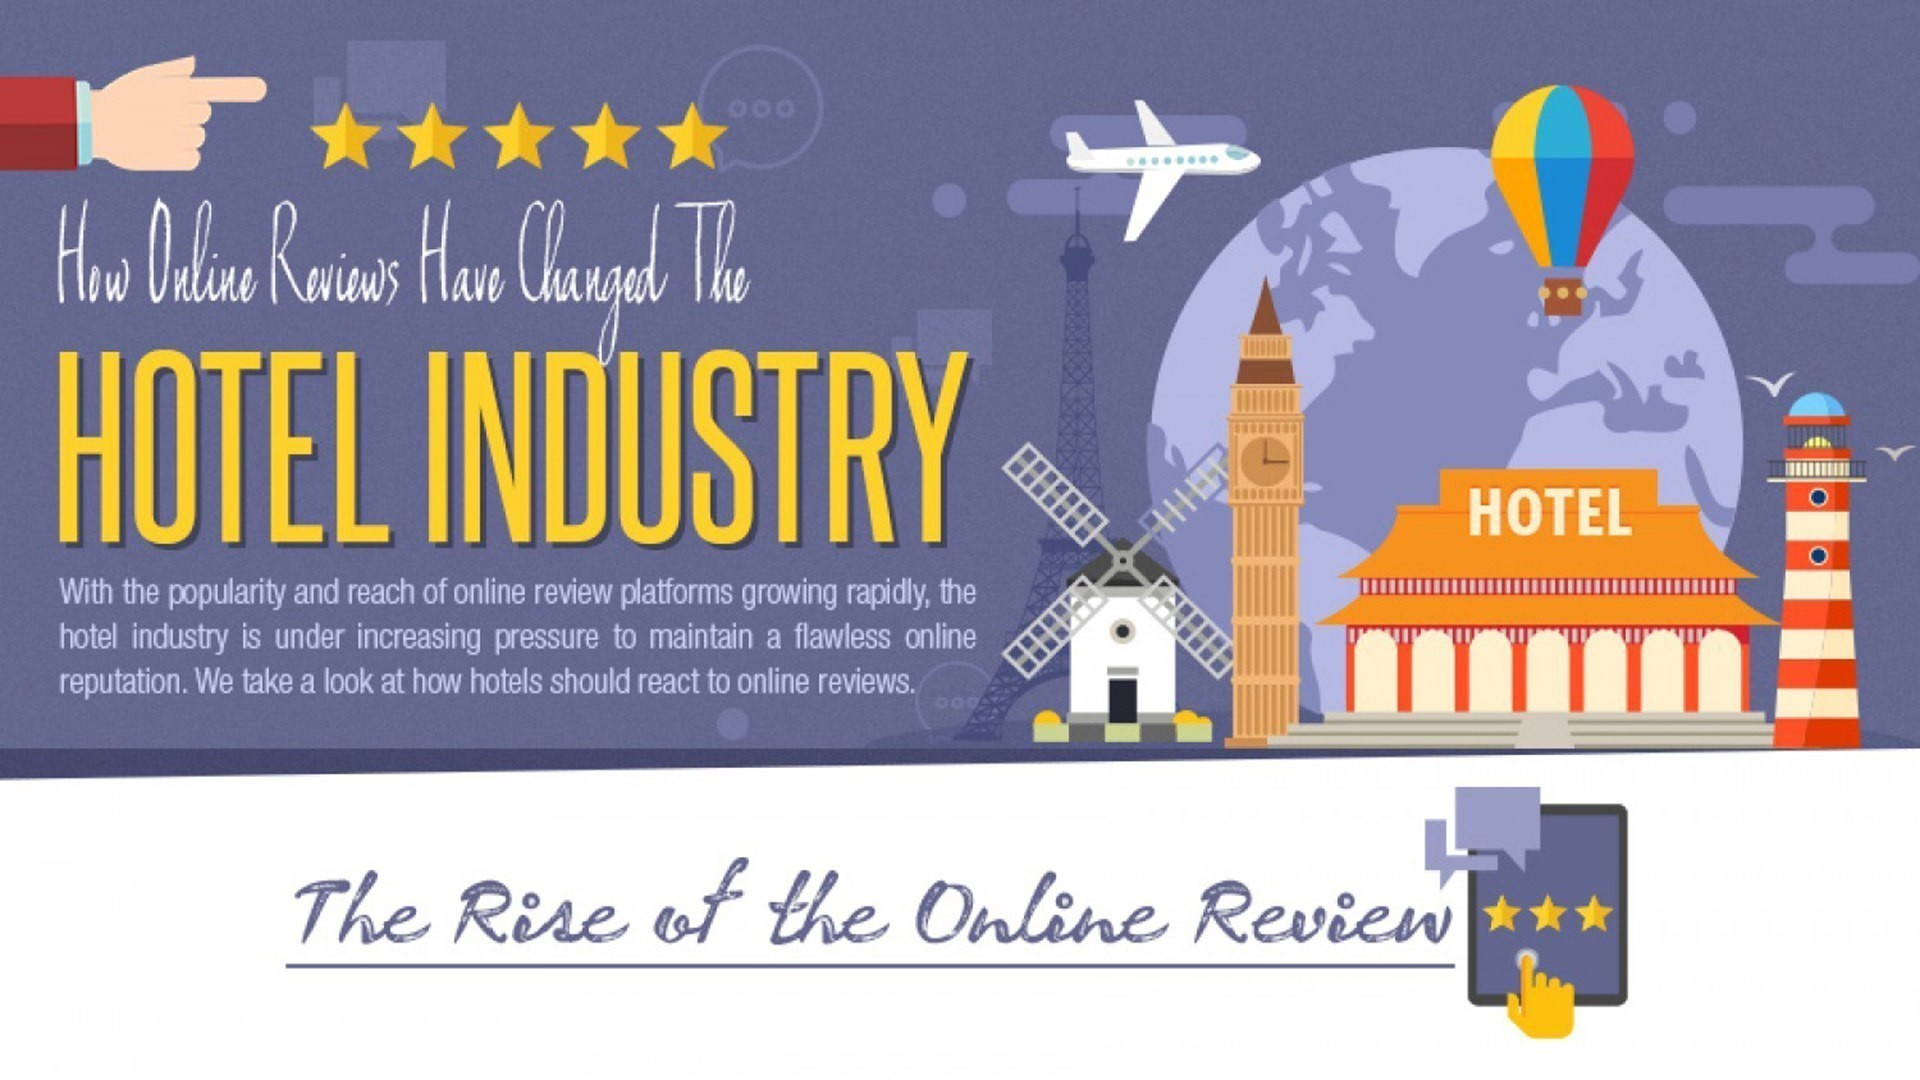 [Infographic] How hotels should respond to online reviews